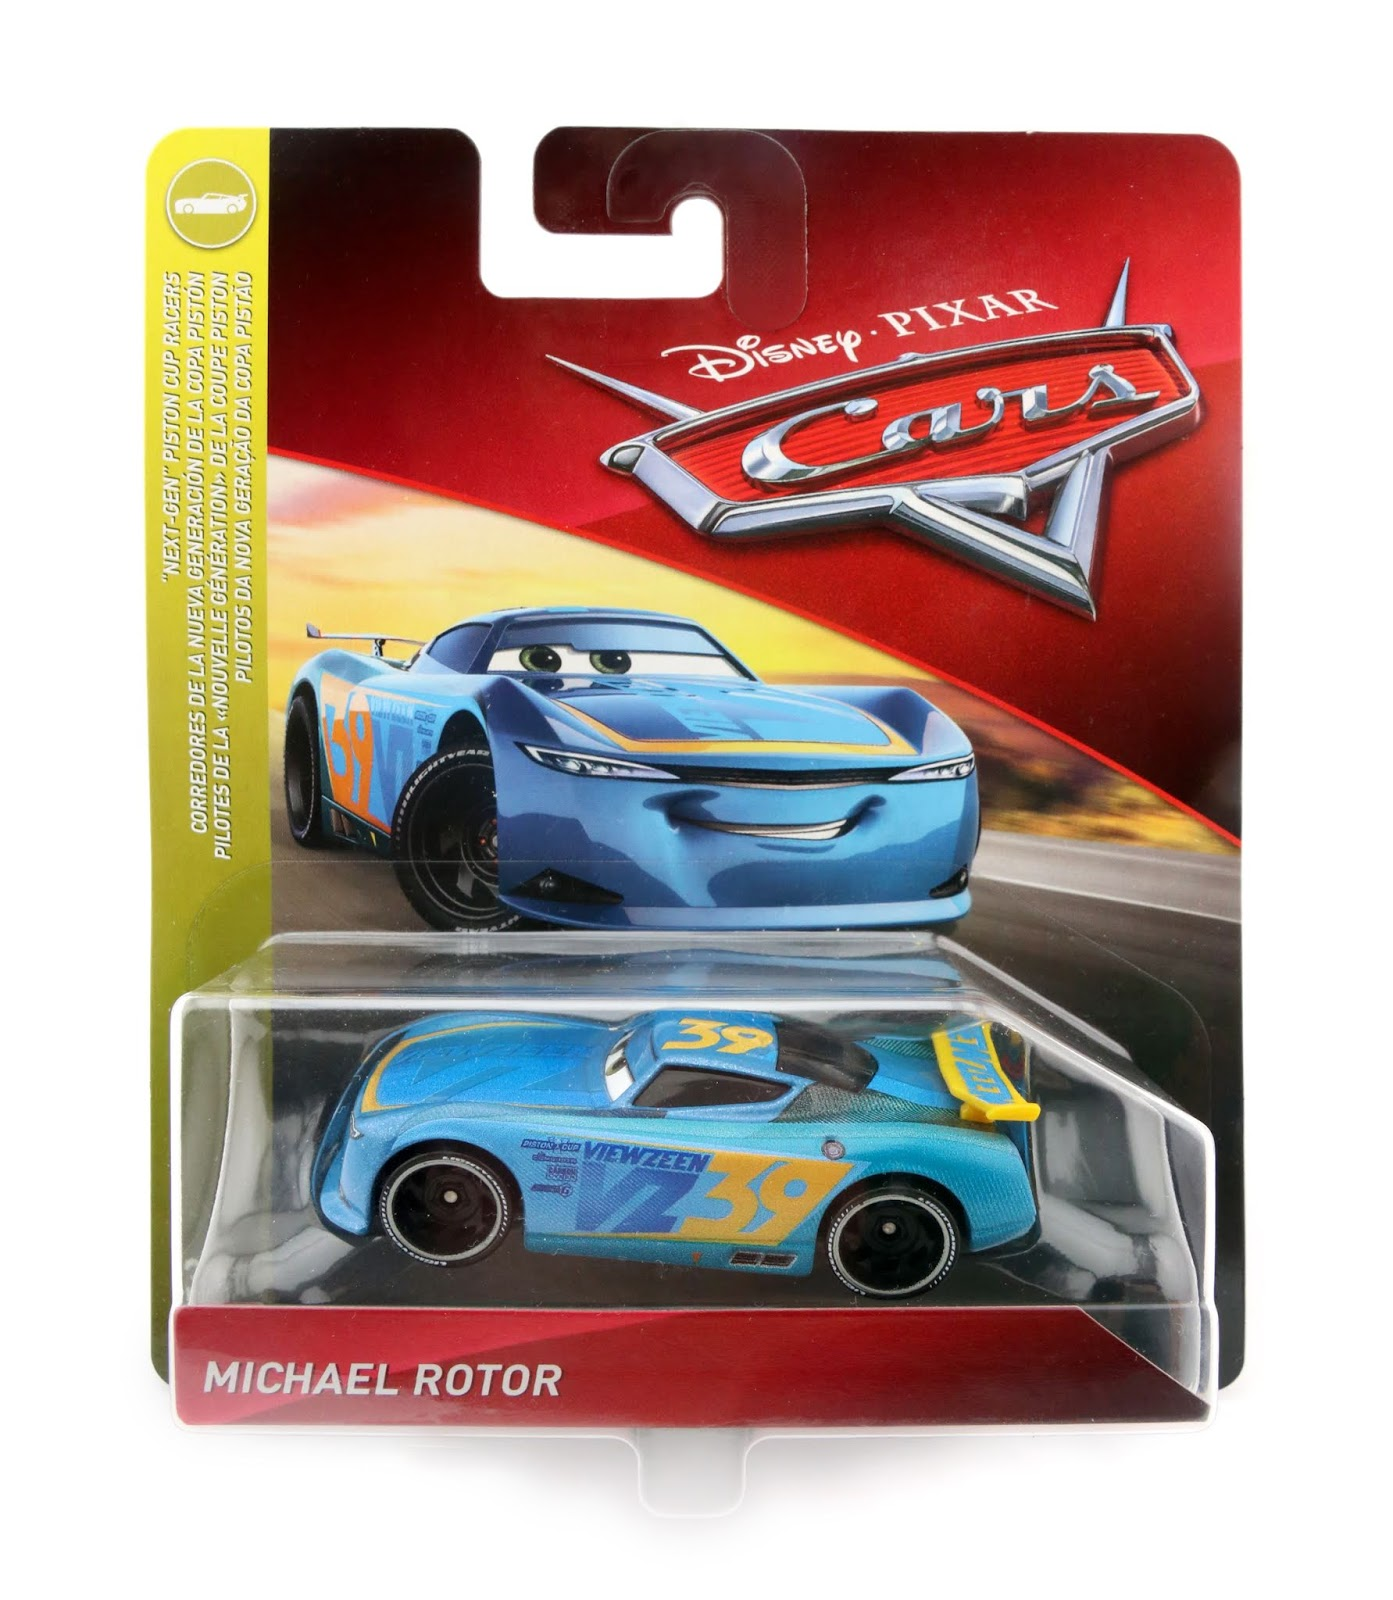 Cars 3 Michael Rotor diecast